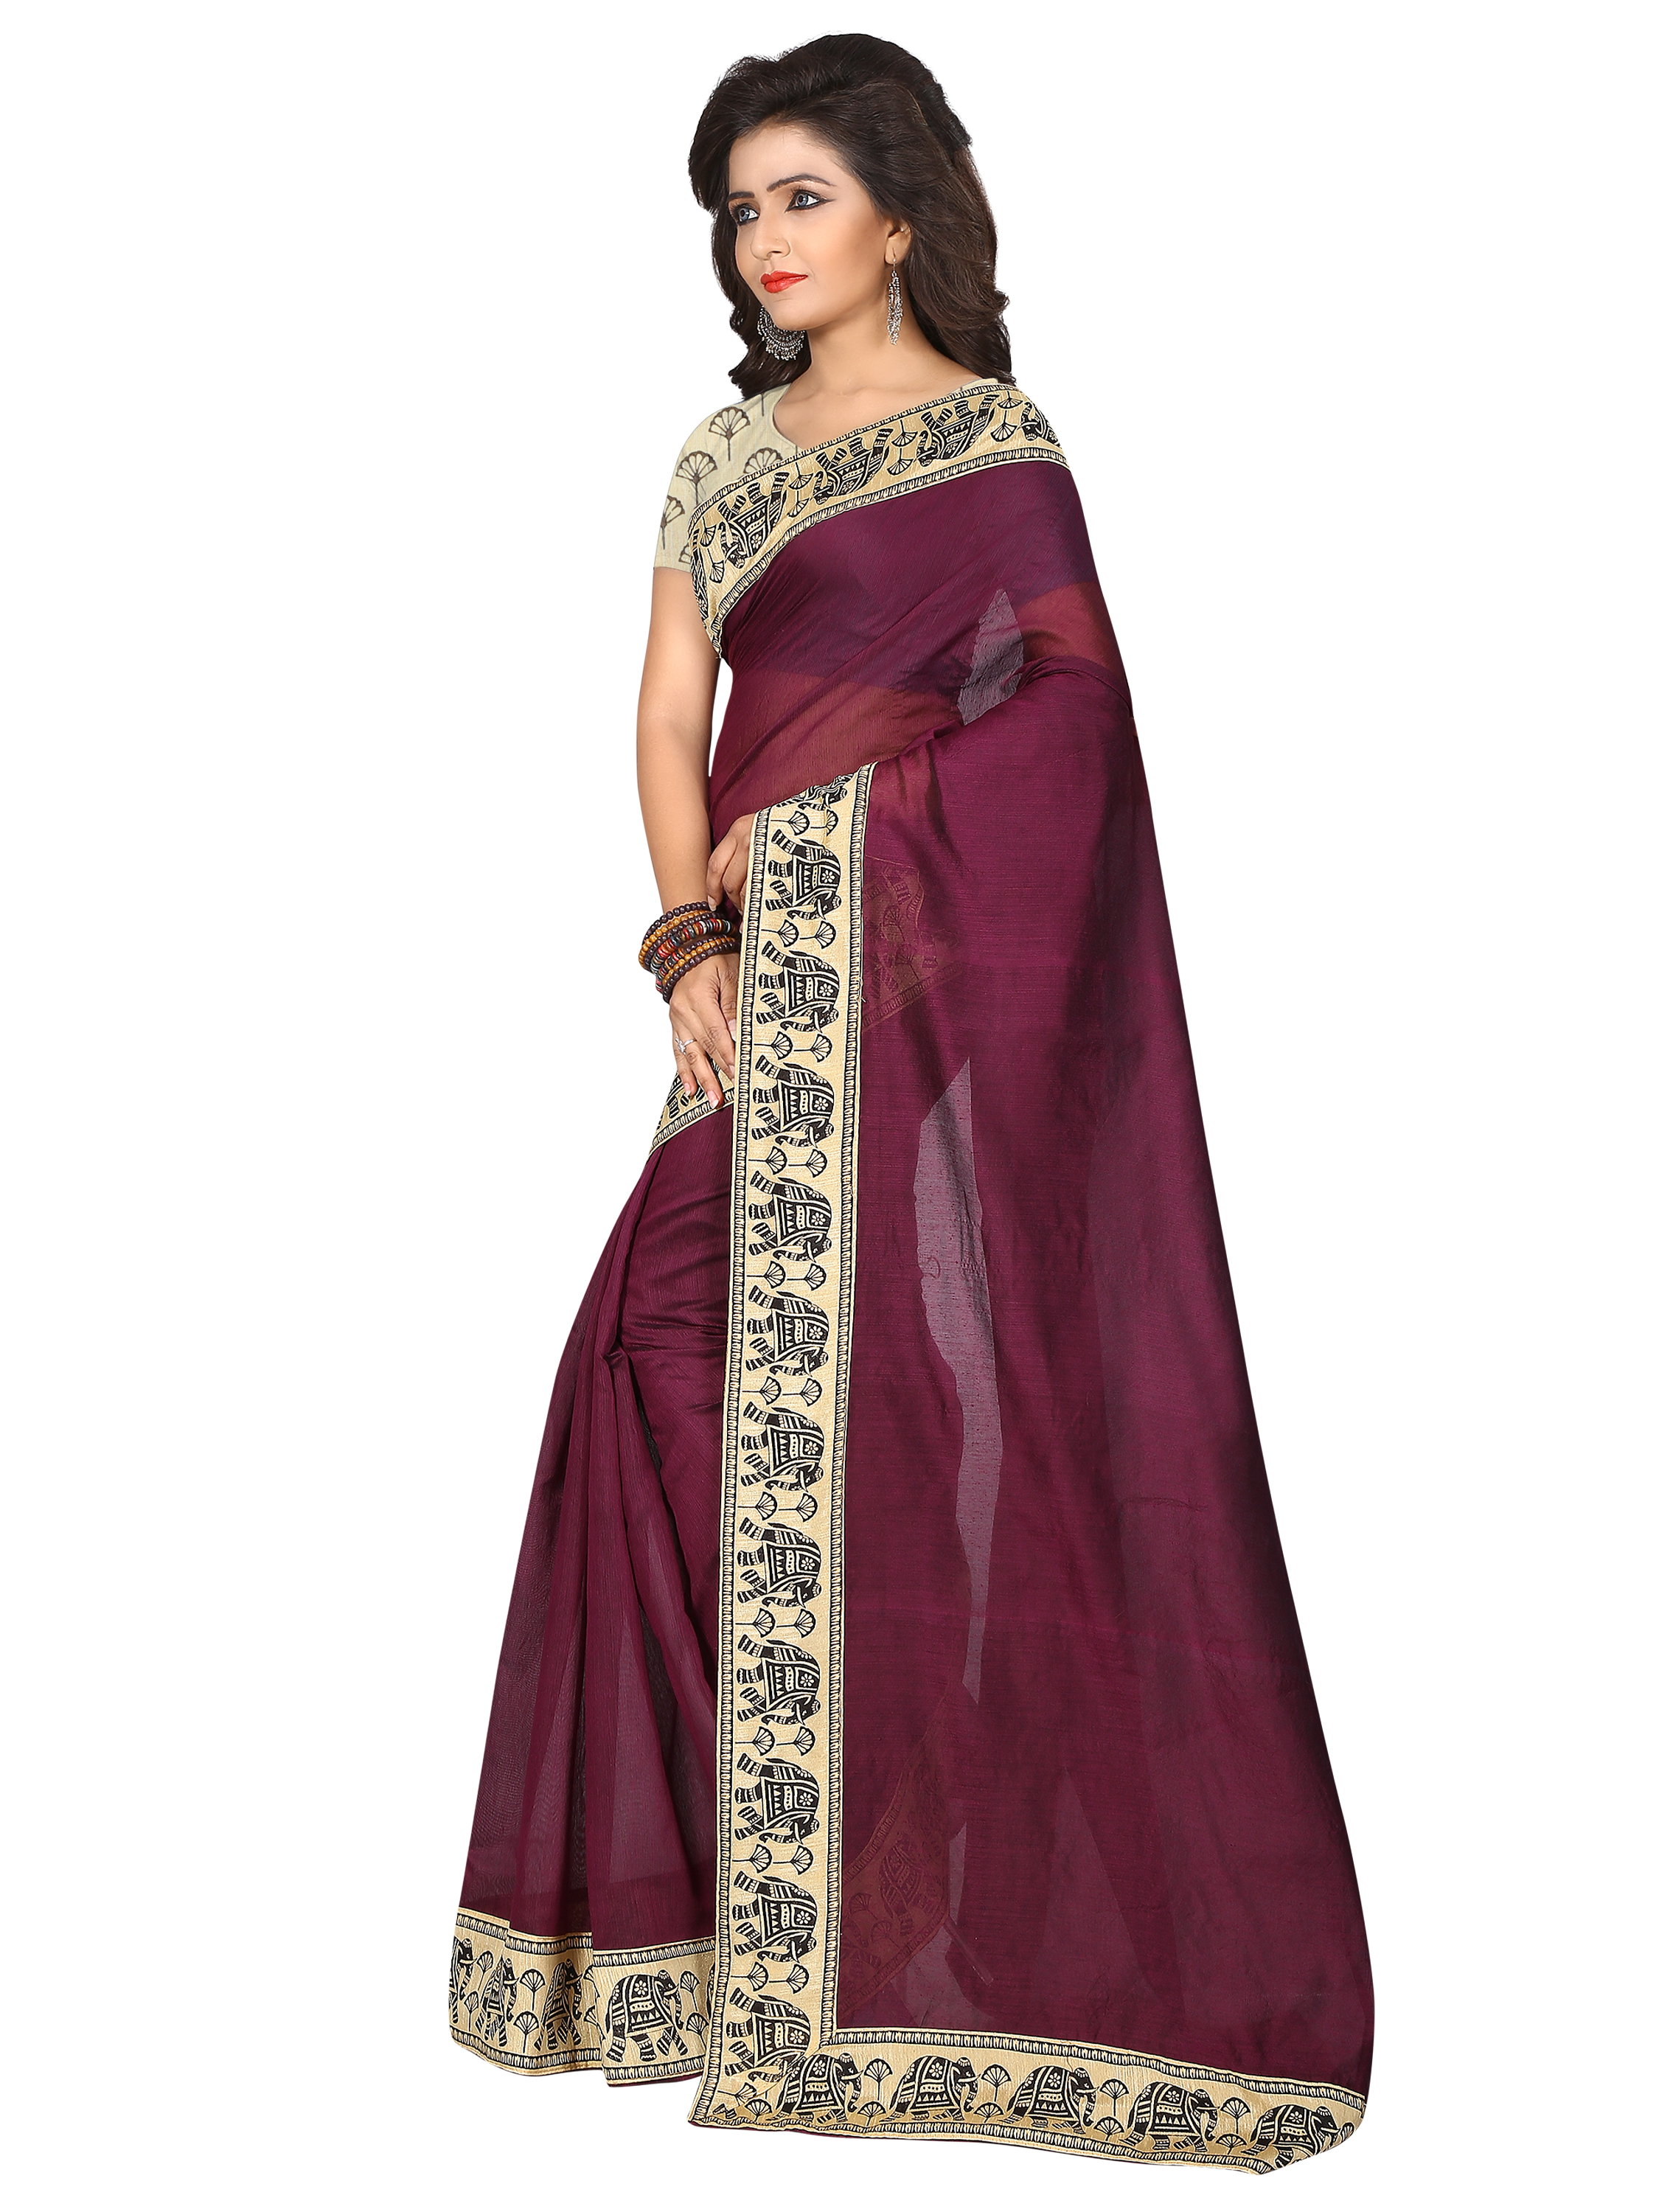 traditional south indian chanderi cotton saree